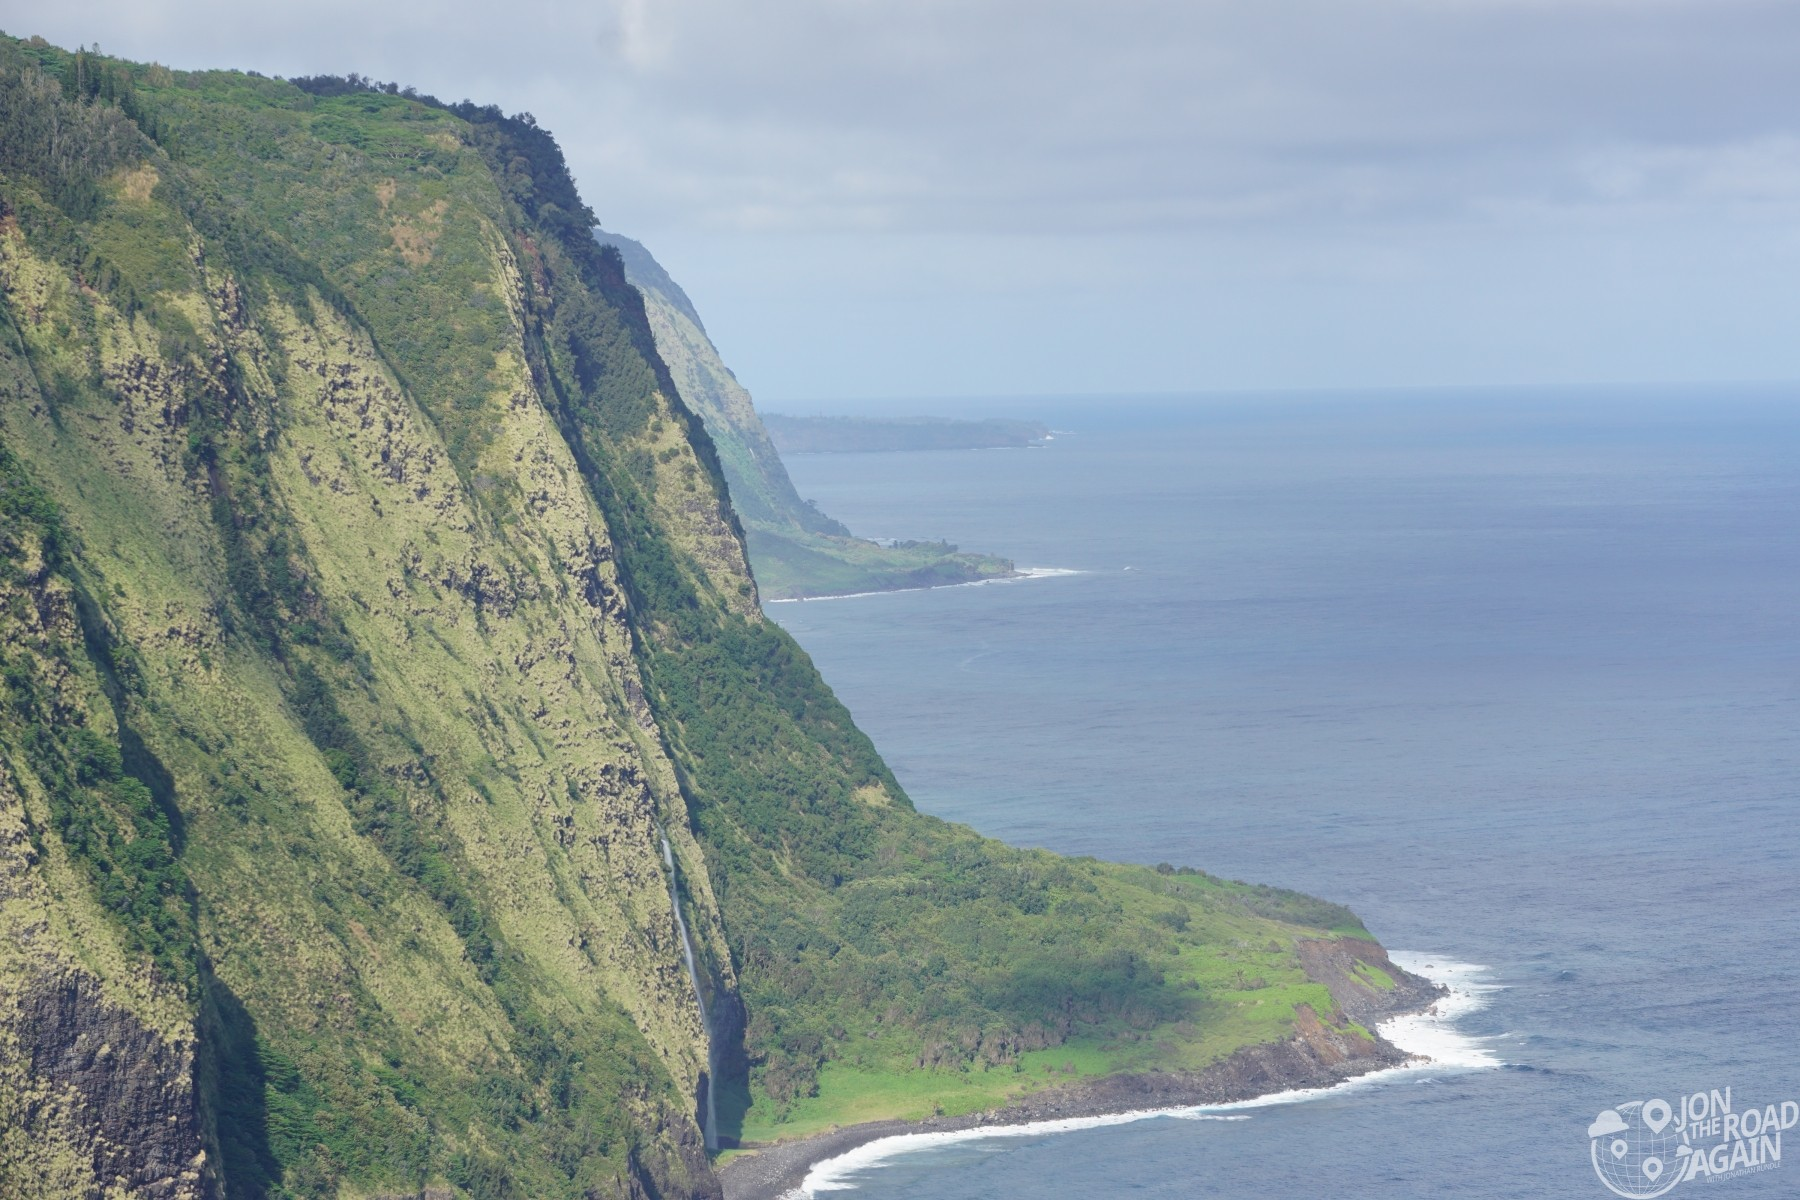 Waipio Valley Coastline